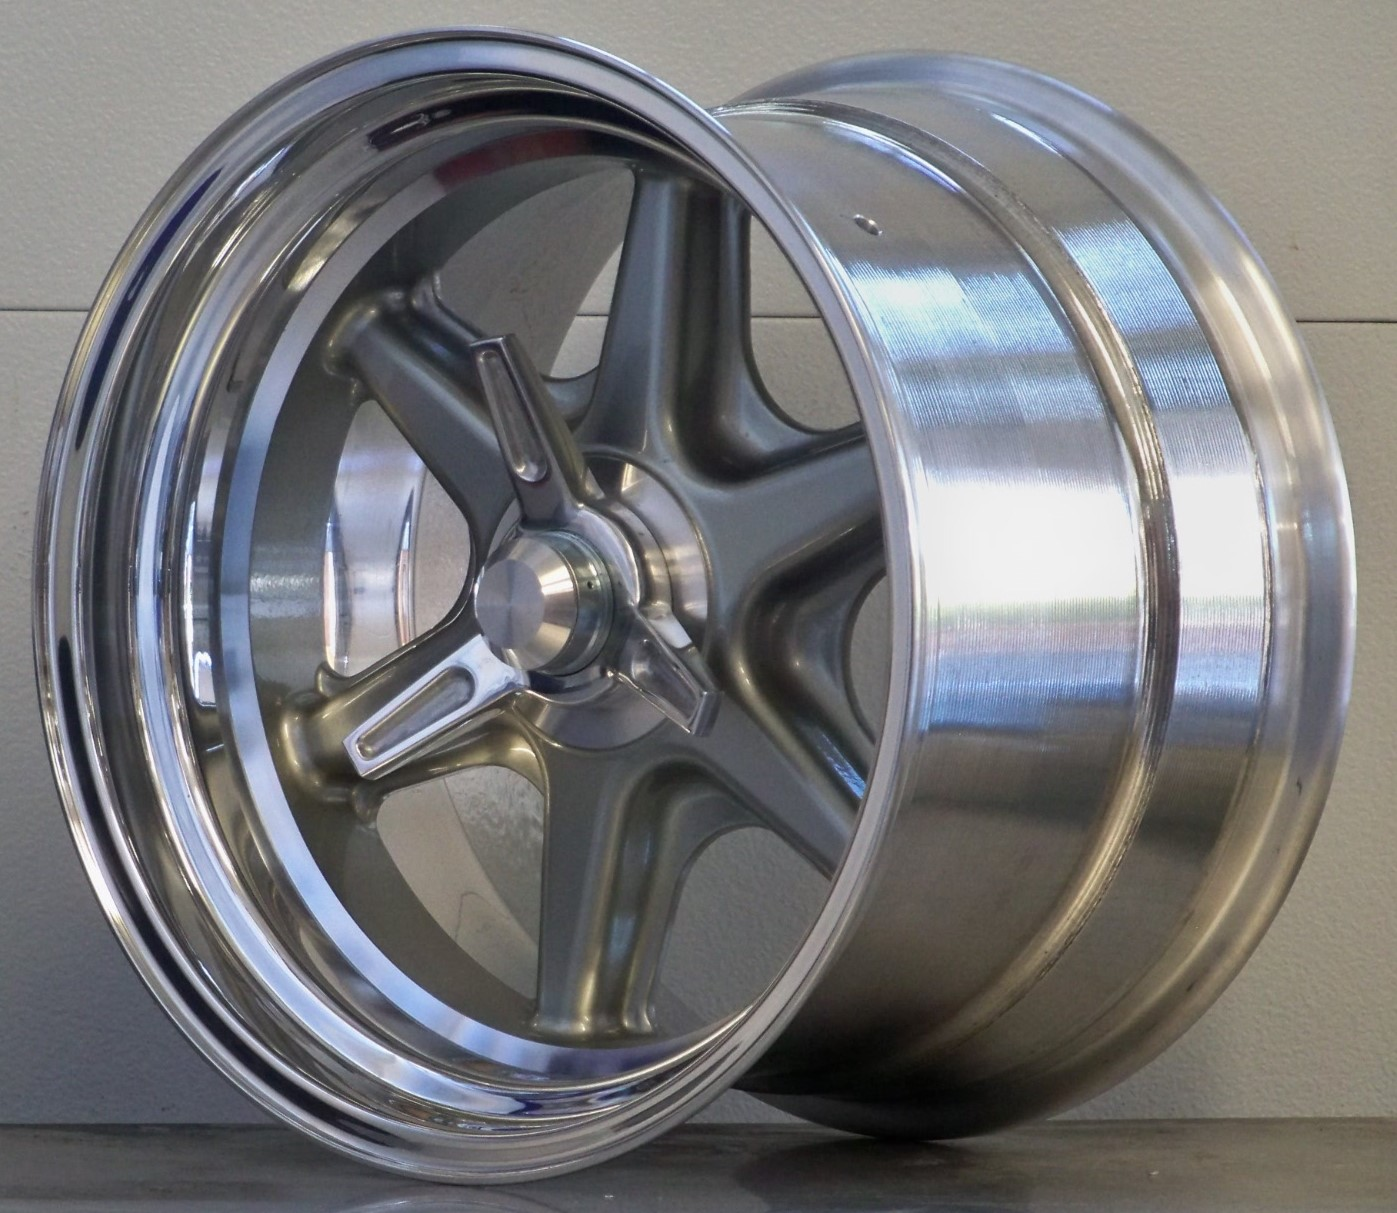 BR17 Wide rear 17 x 8 17 x 12 plus adapters/spinners